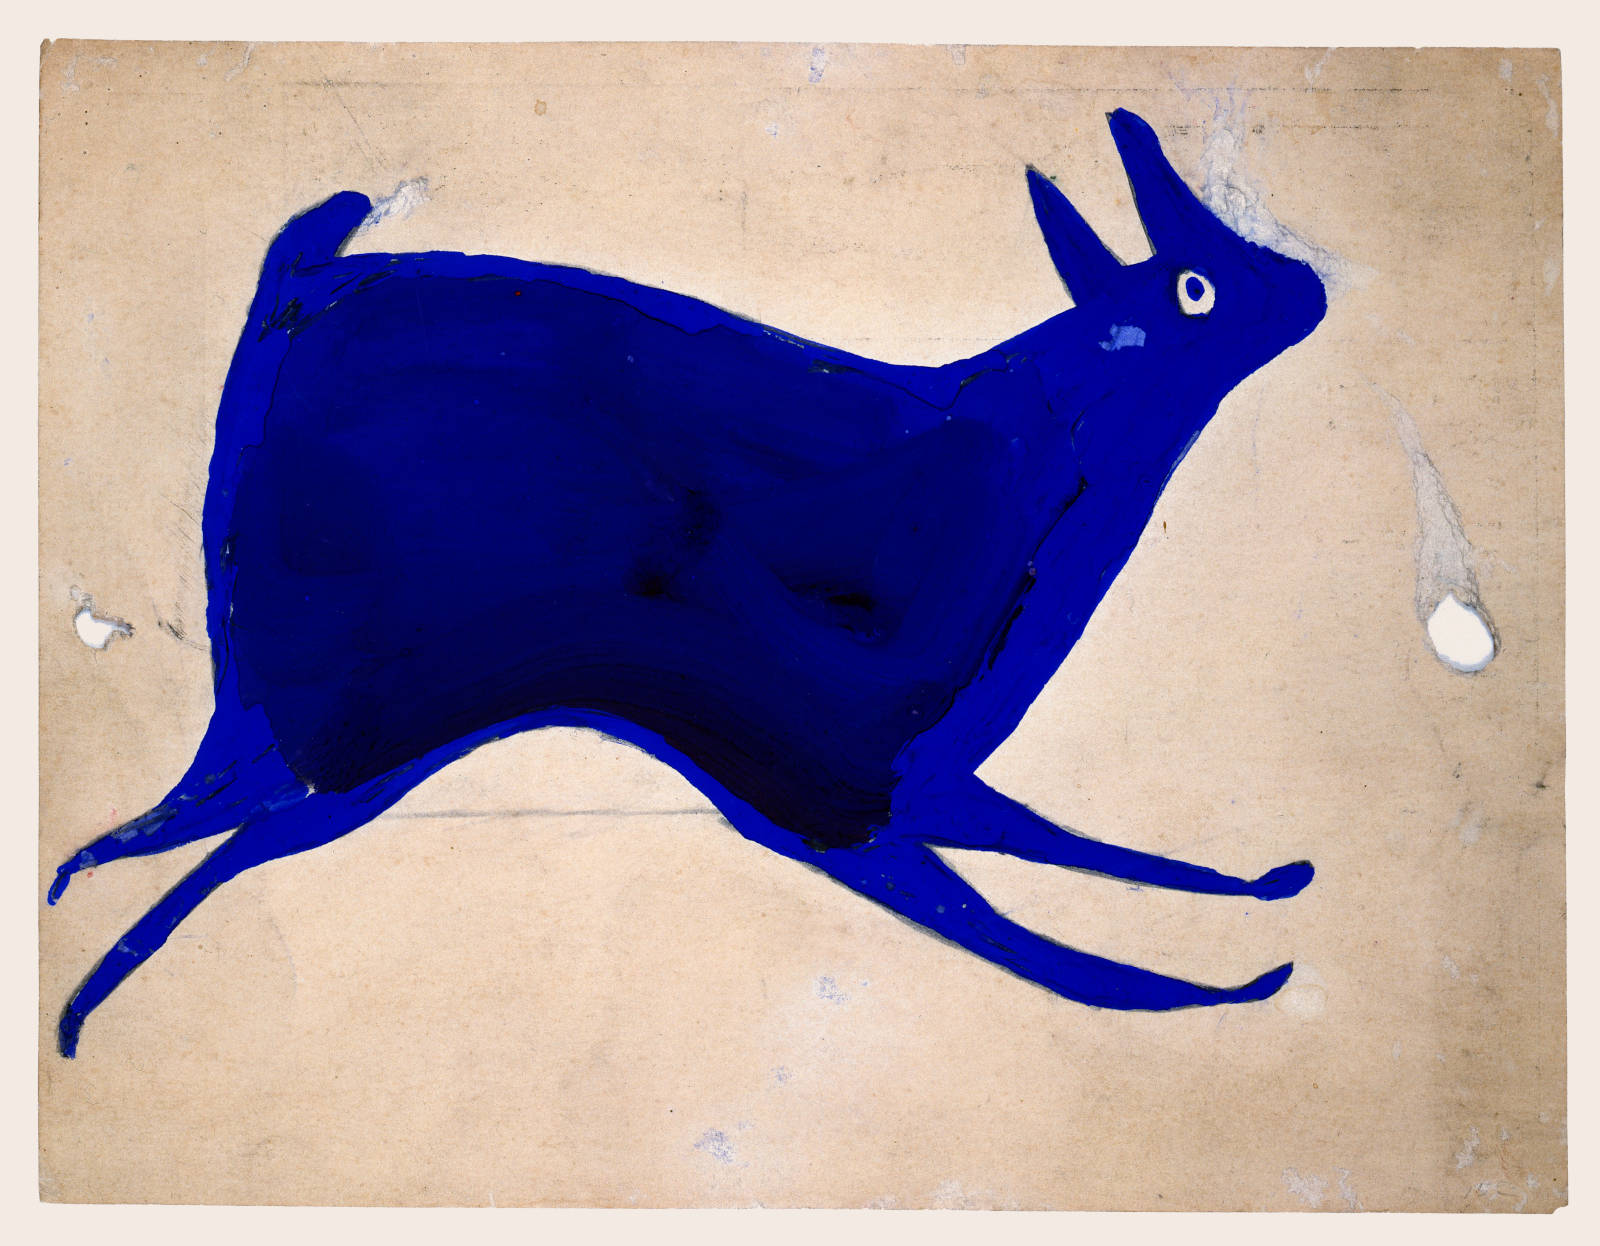 Blue Rabbit Running